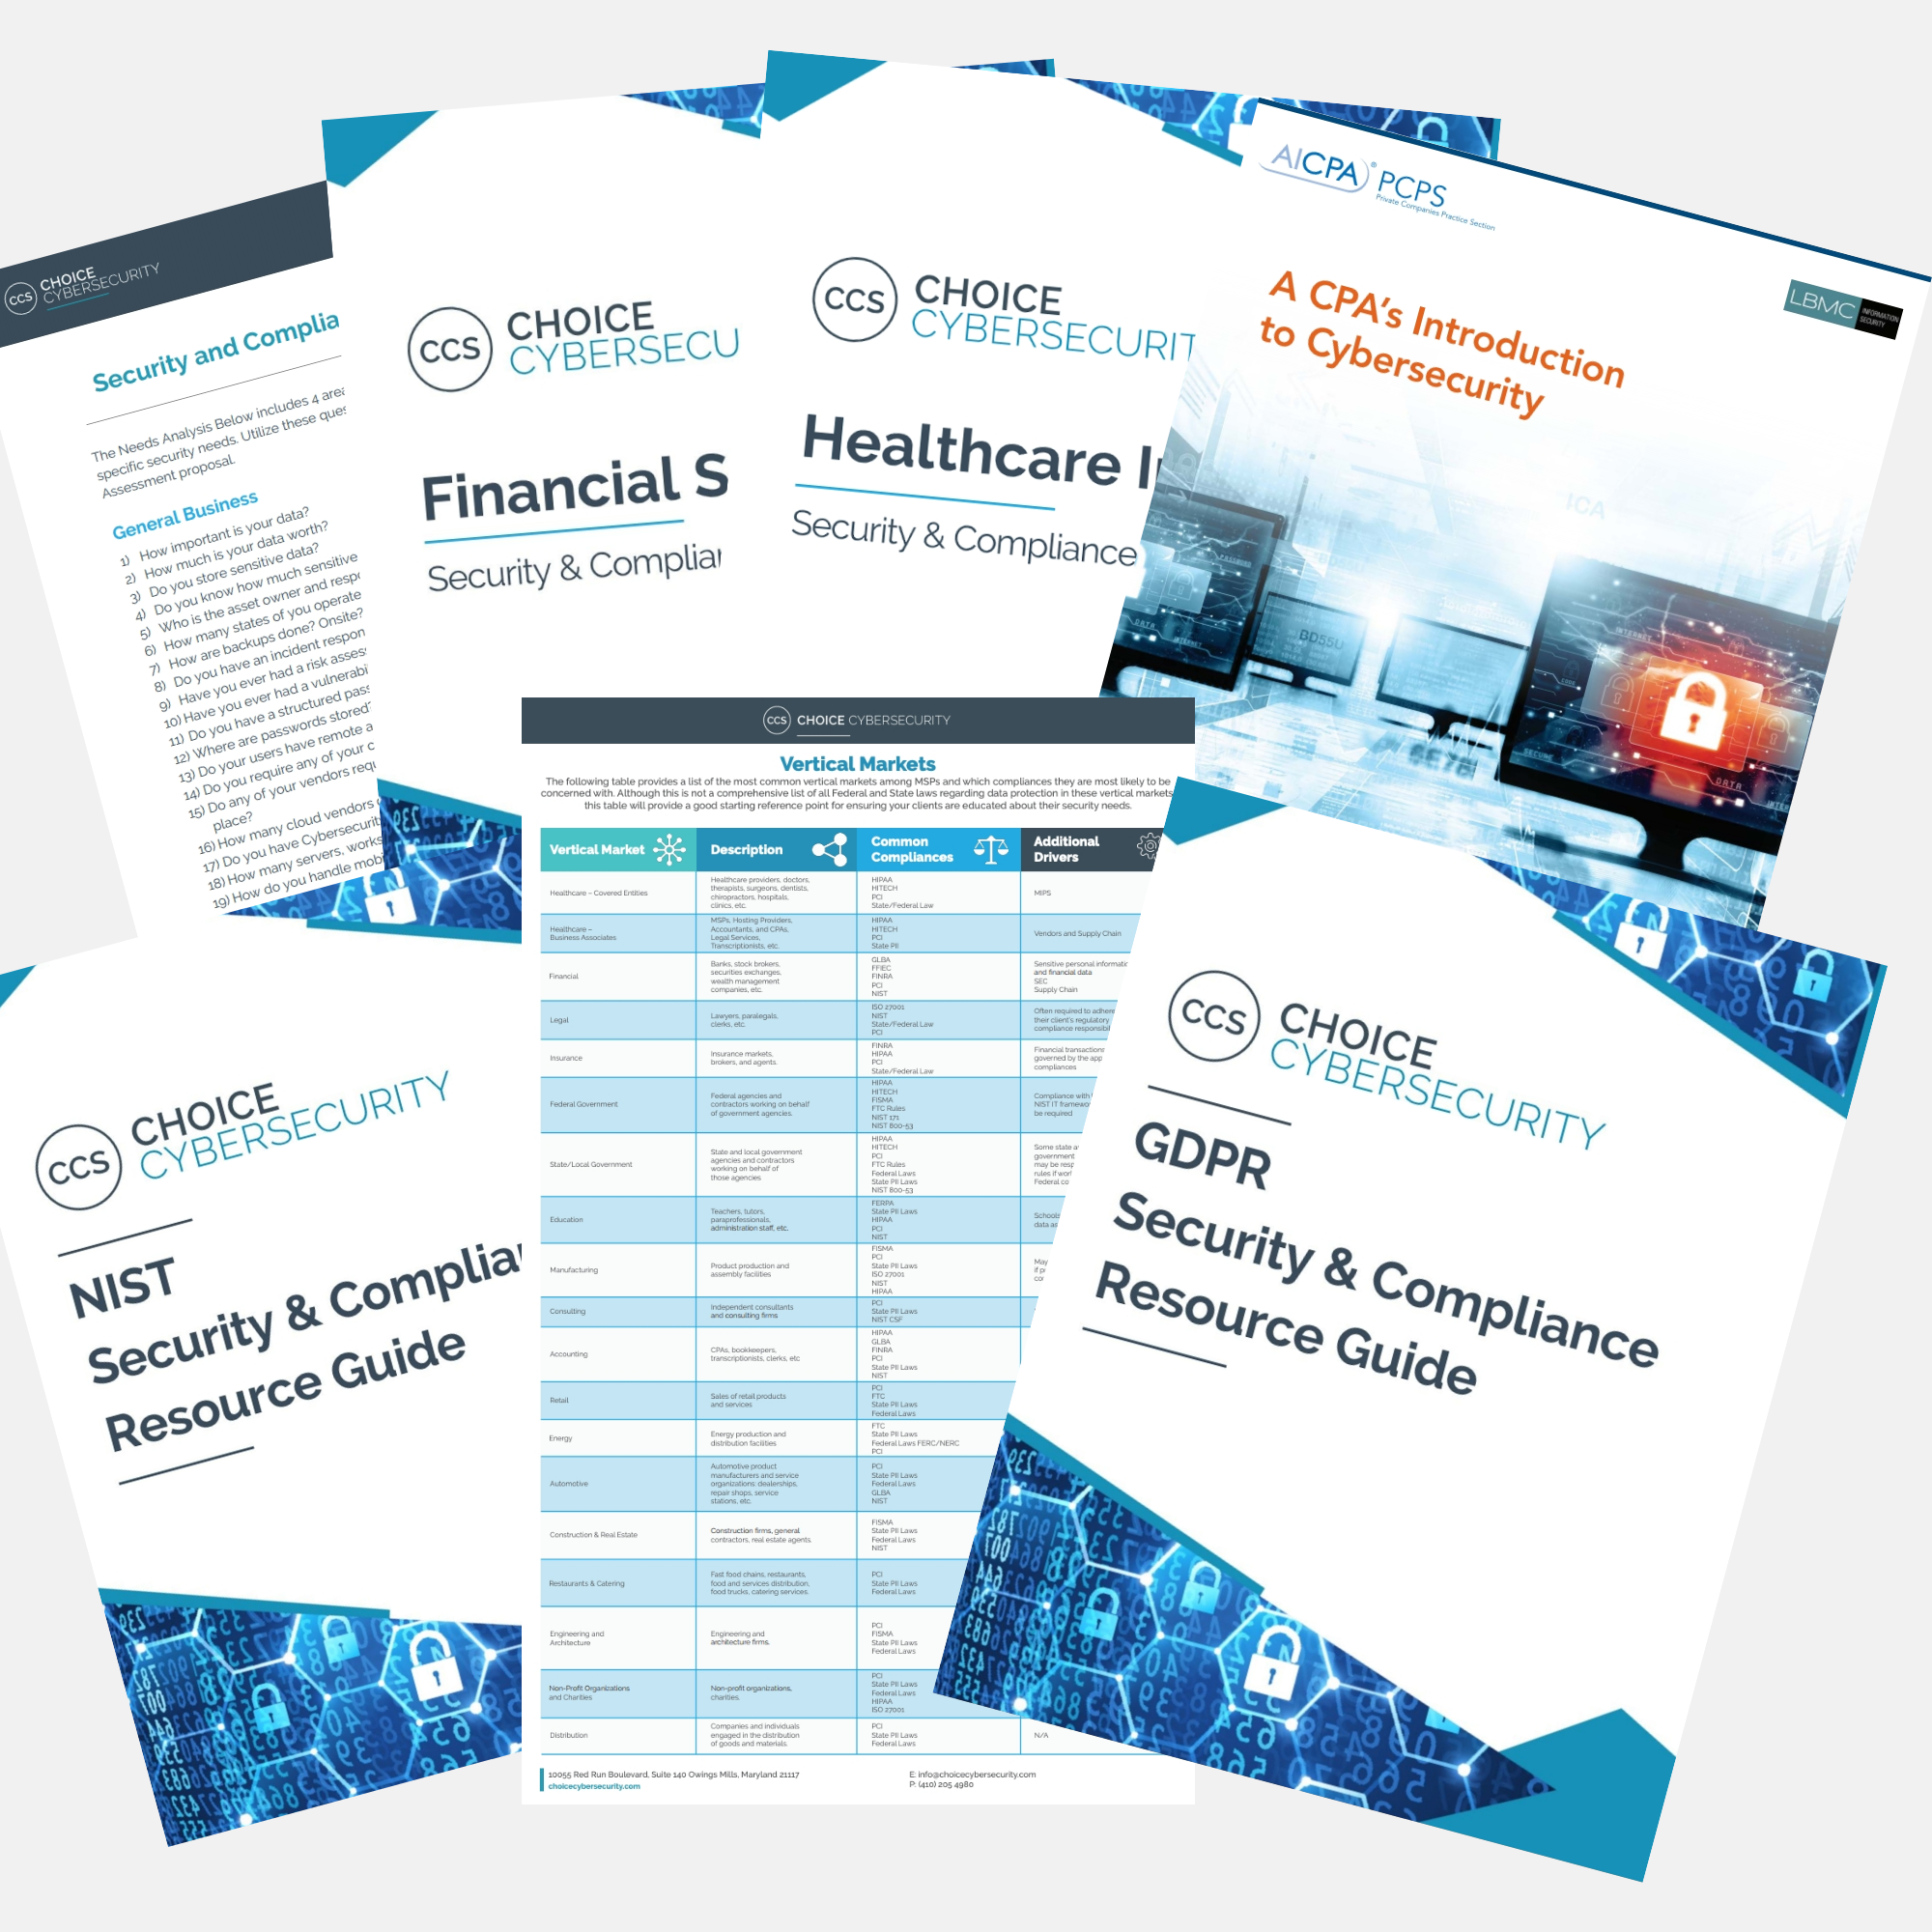 Security & Compliance Resource Guides -